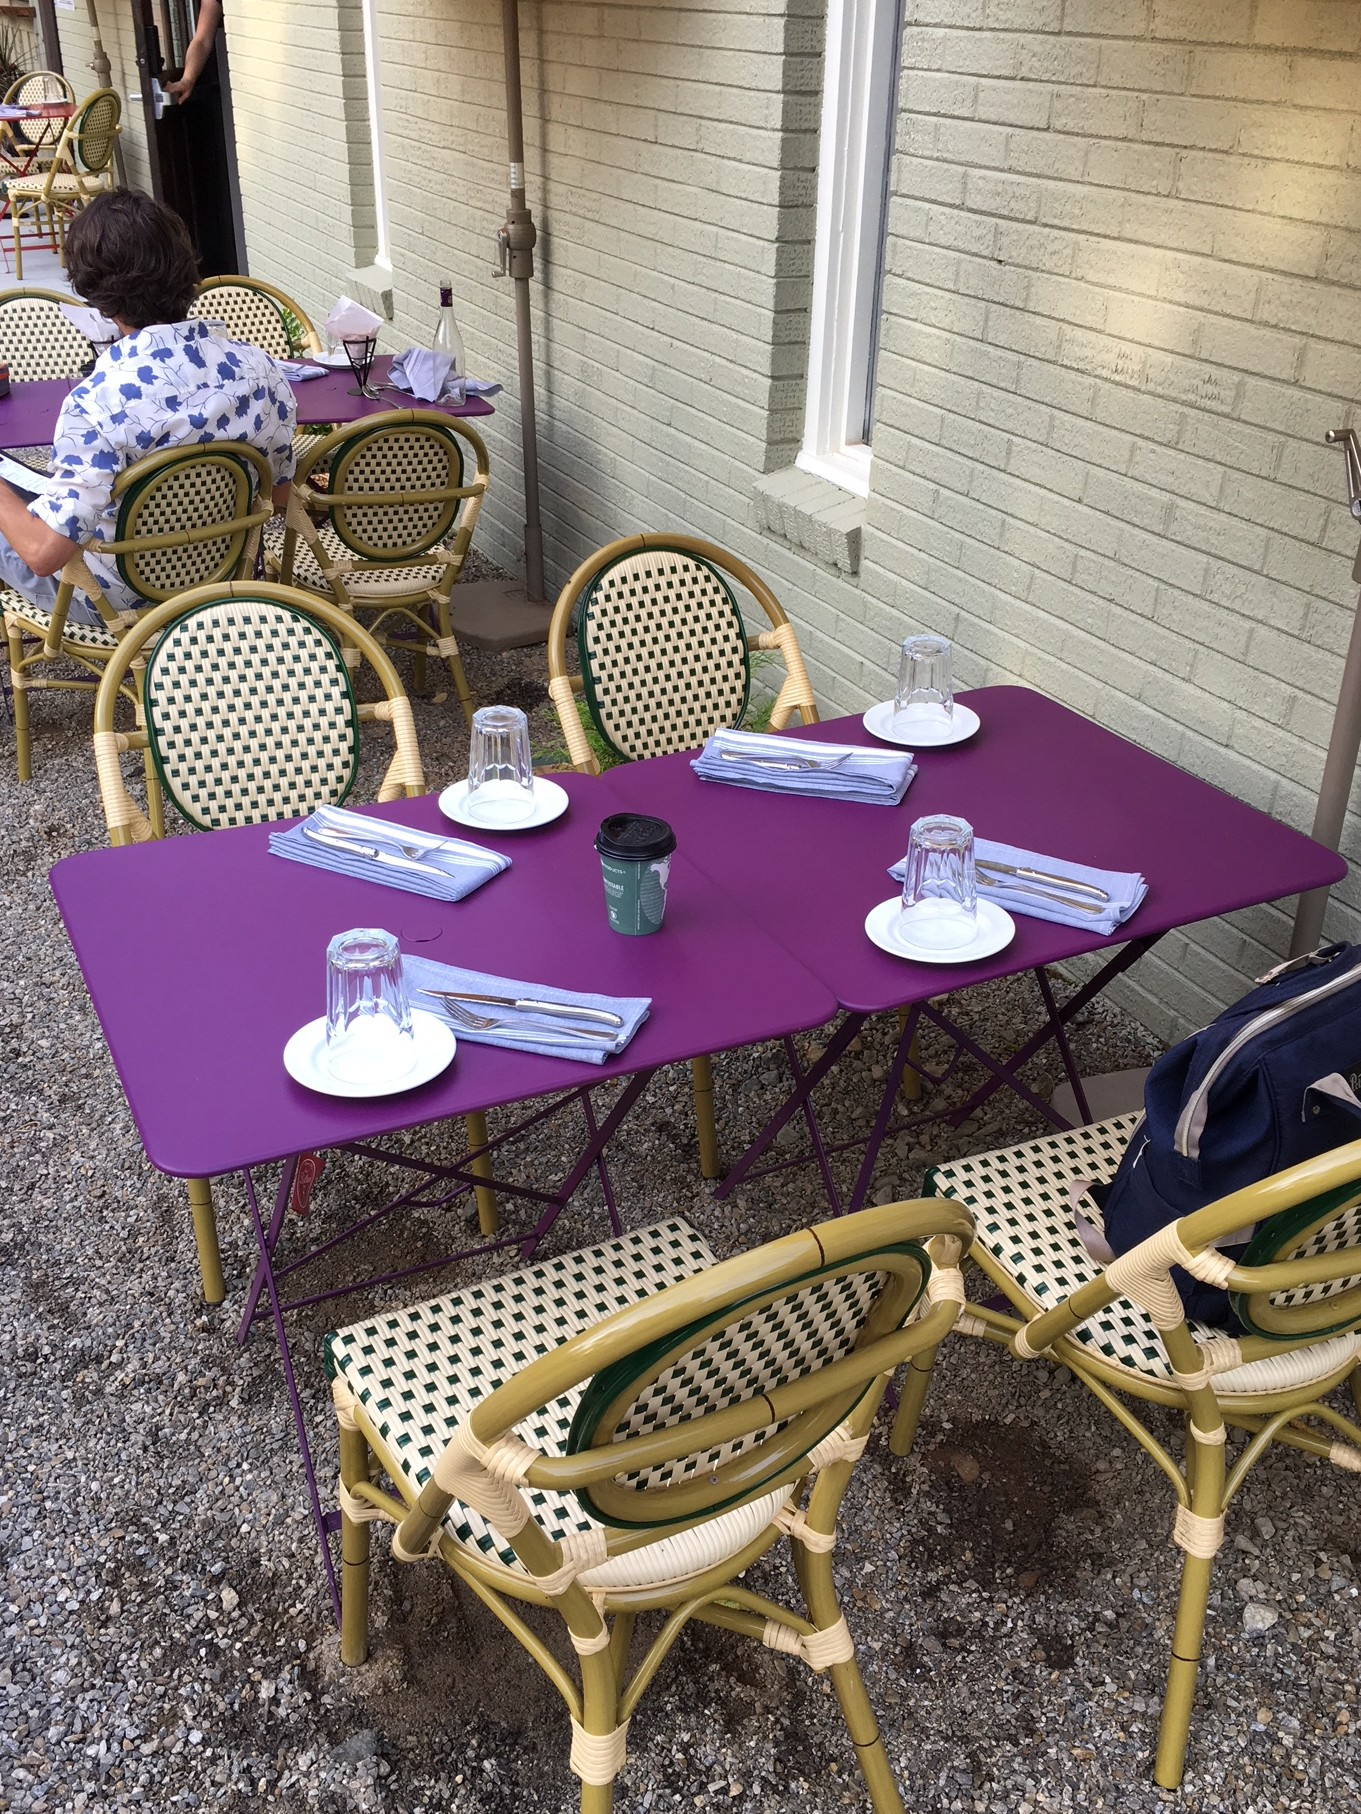 outdoor table for 4 at Rendezvous